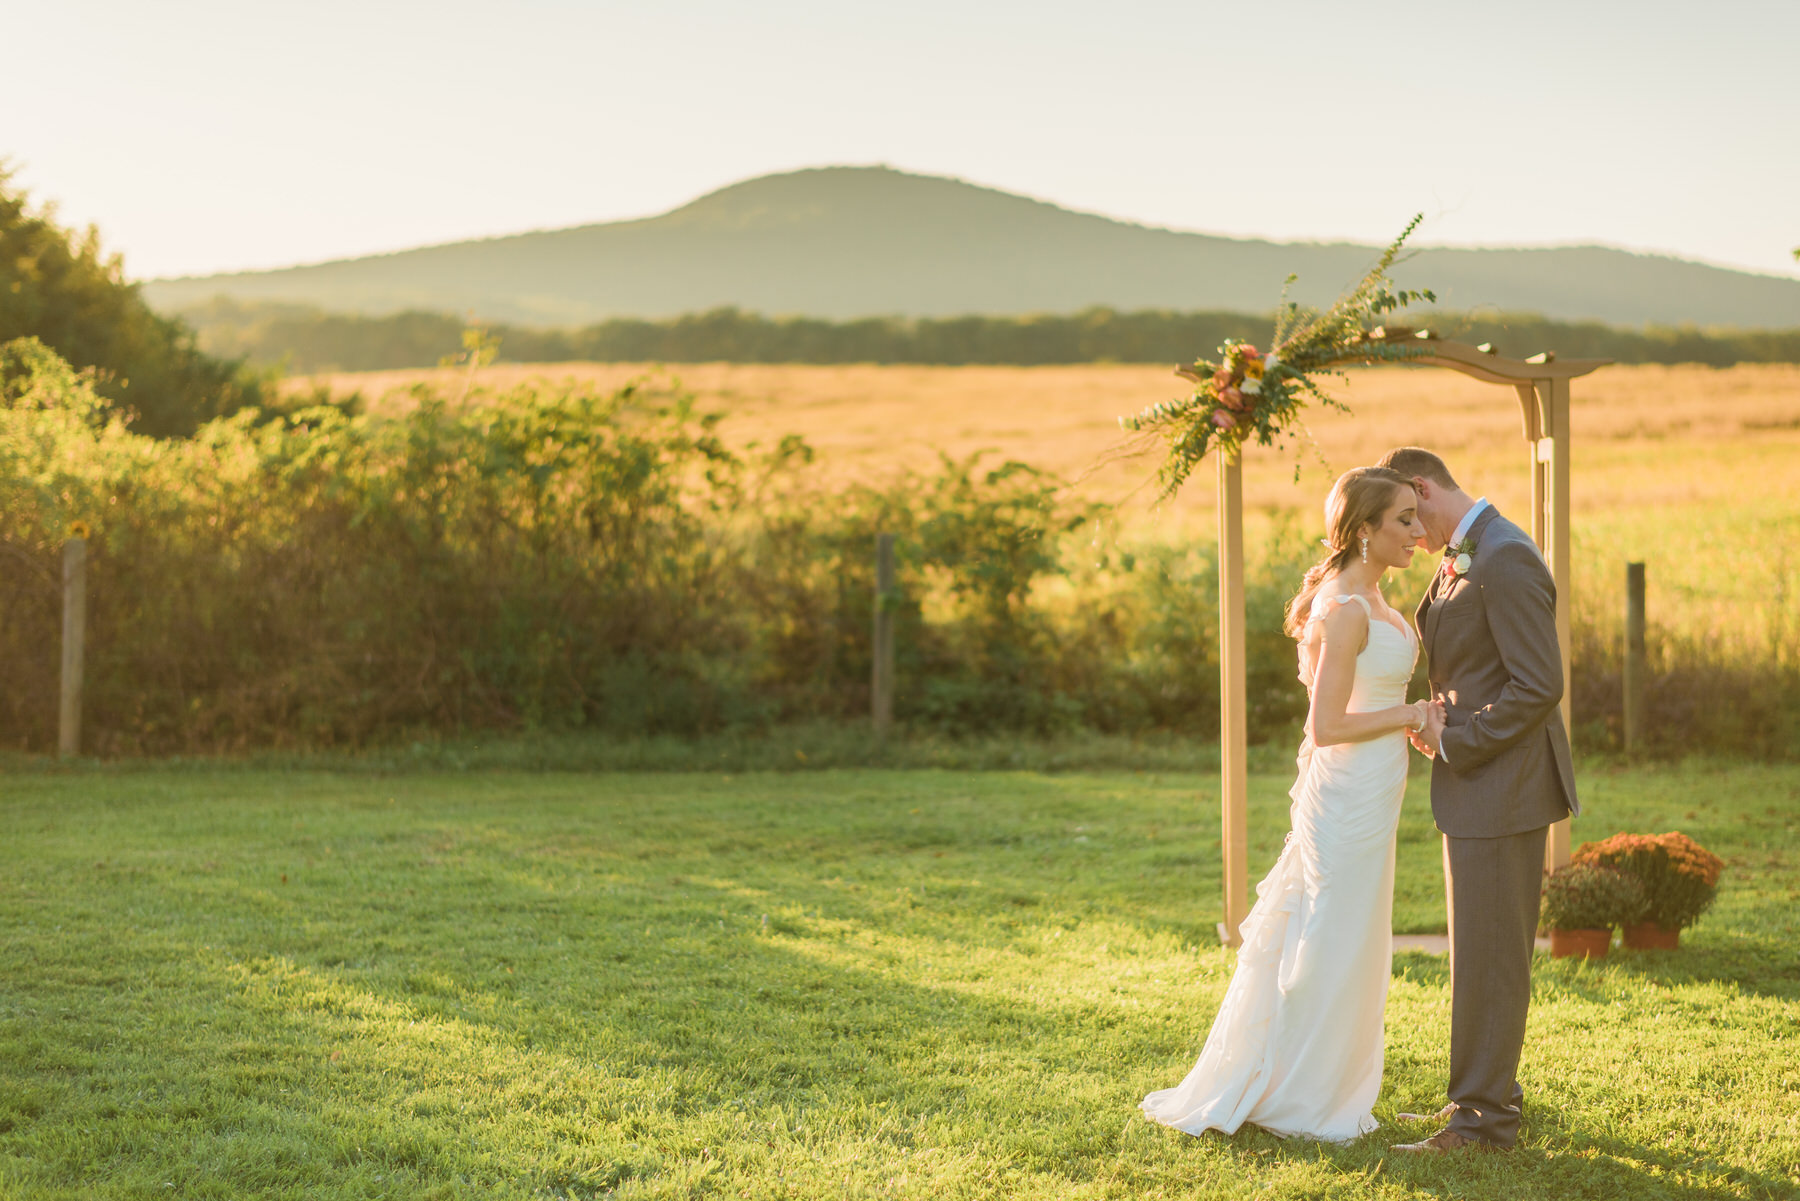 The bride and groom at The Comus Inn at Sugarloaf Mountain by Washington DC Wedding Photographer Adam Mason